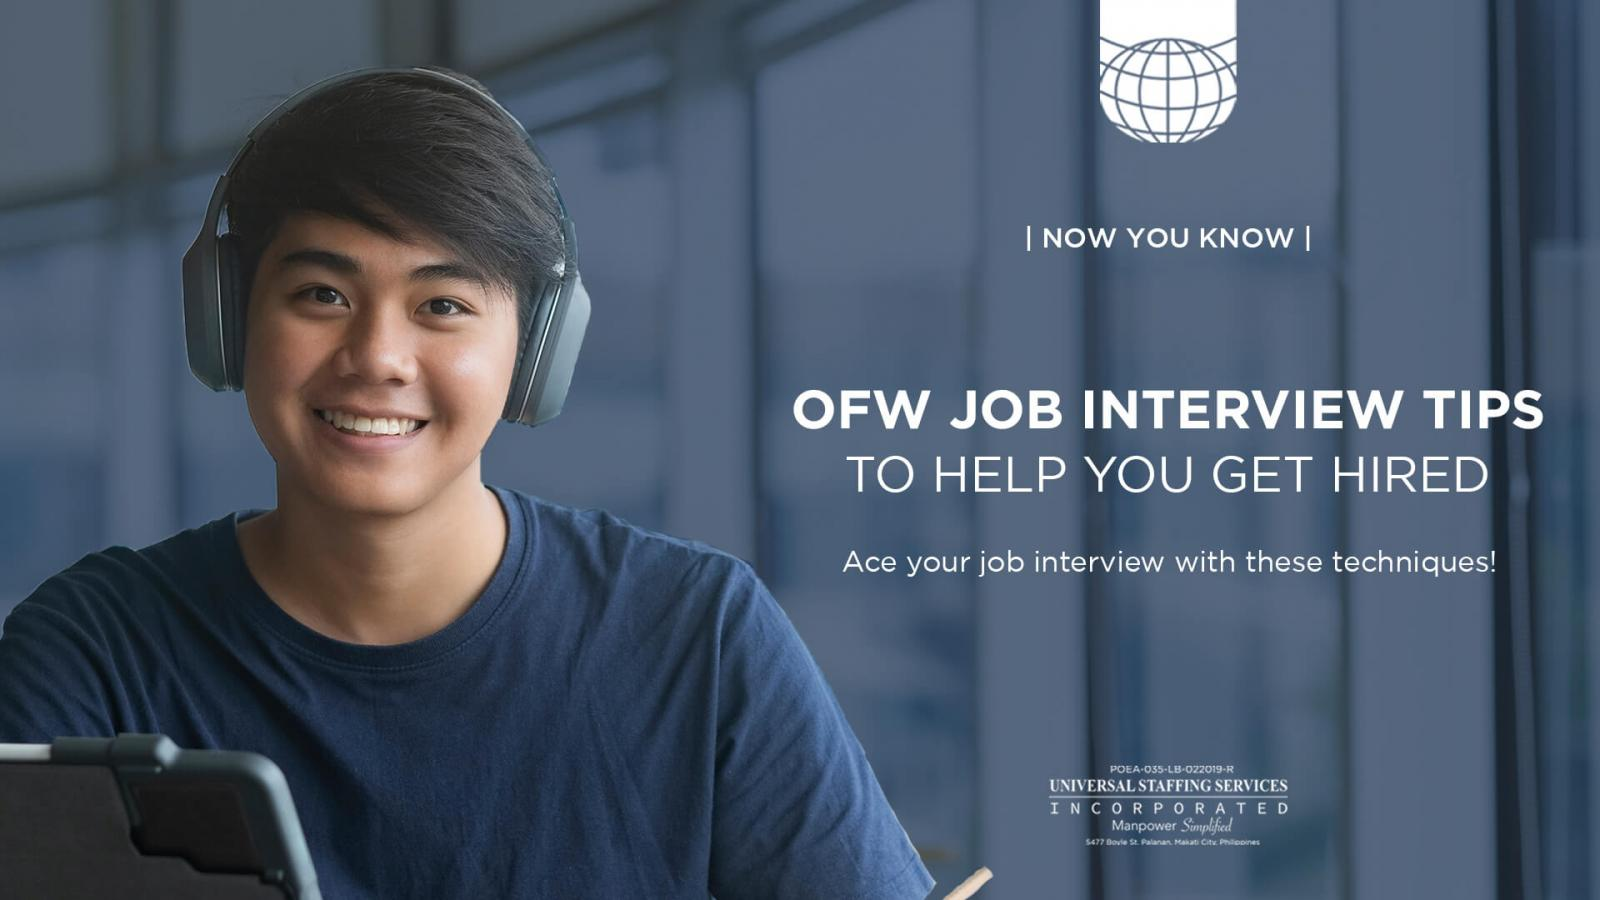 OFW Job Interview Tips to Help You Get Hired